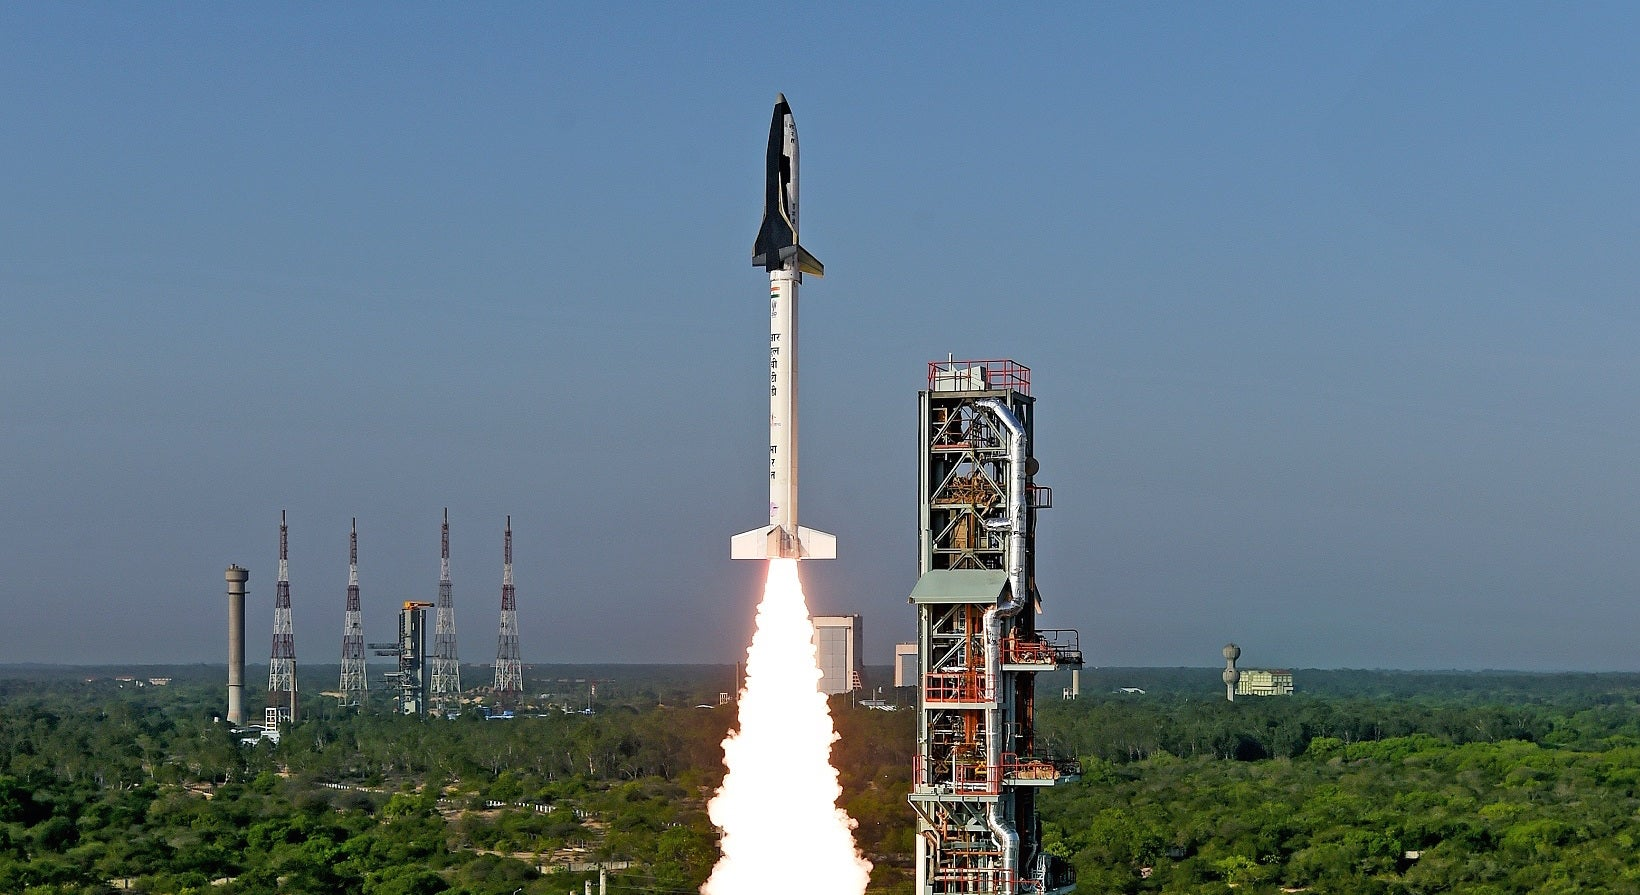 india india-space-shuttle isro reusable-launch-vehicle-technology-demonstrator rocket-launch space